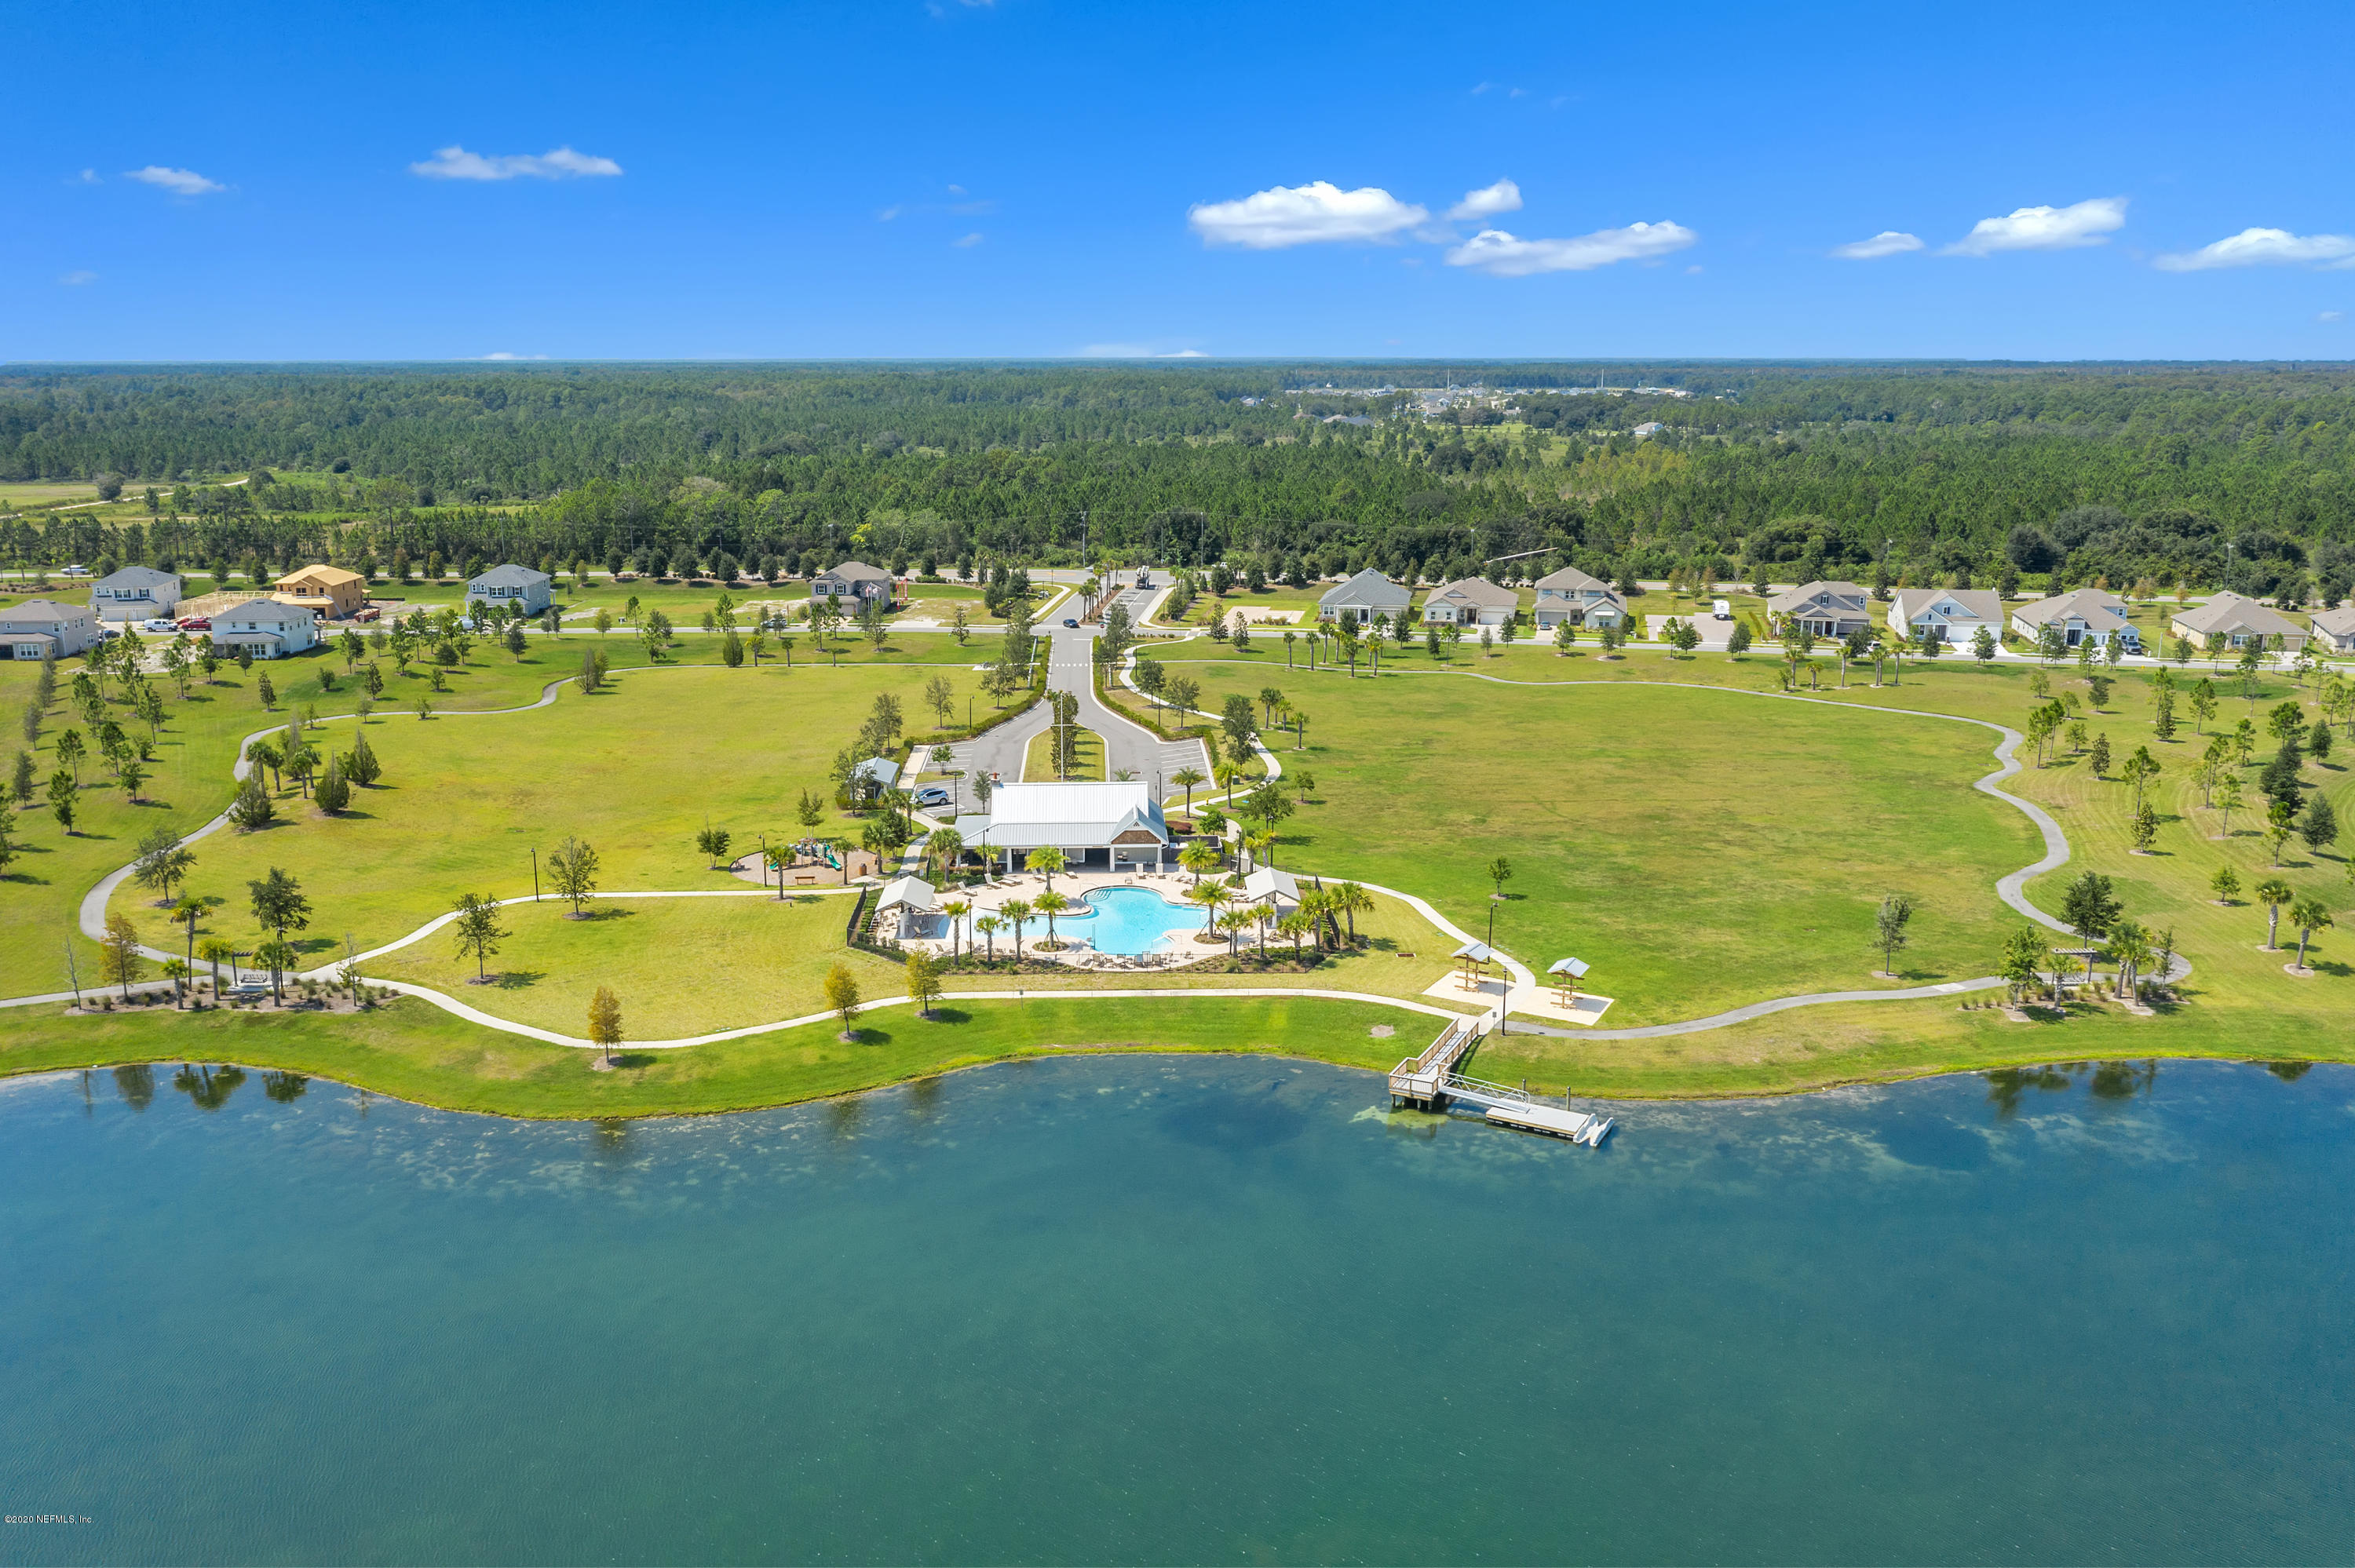 382 WILLOW LAKE, ST AUGUSTINE, FLORIDA 32092, 4 Bedrooms Bedrooms, ,3 BathroomsBathrooms,Residential,For sale,WILLOW LAKE,1052037